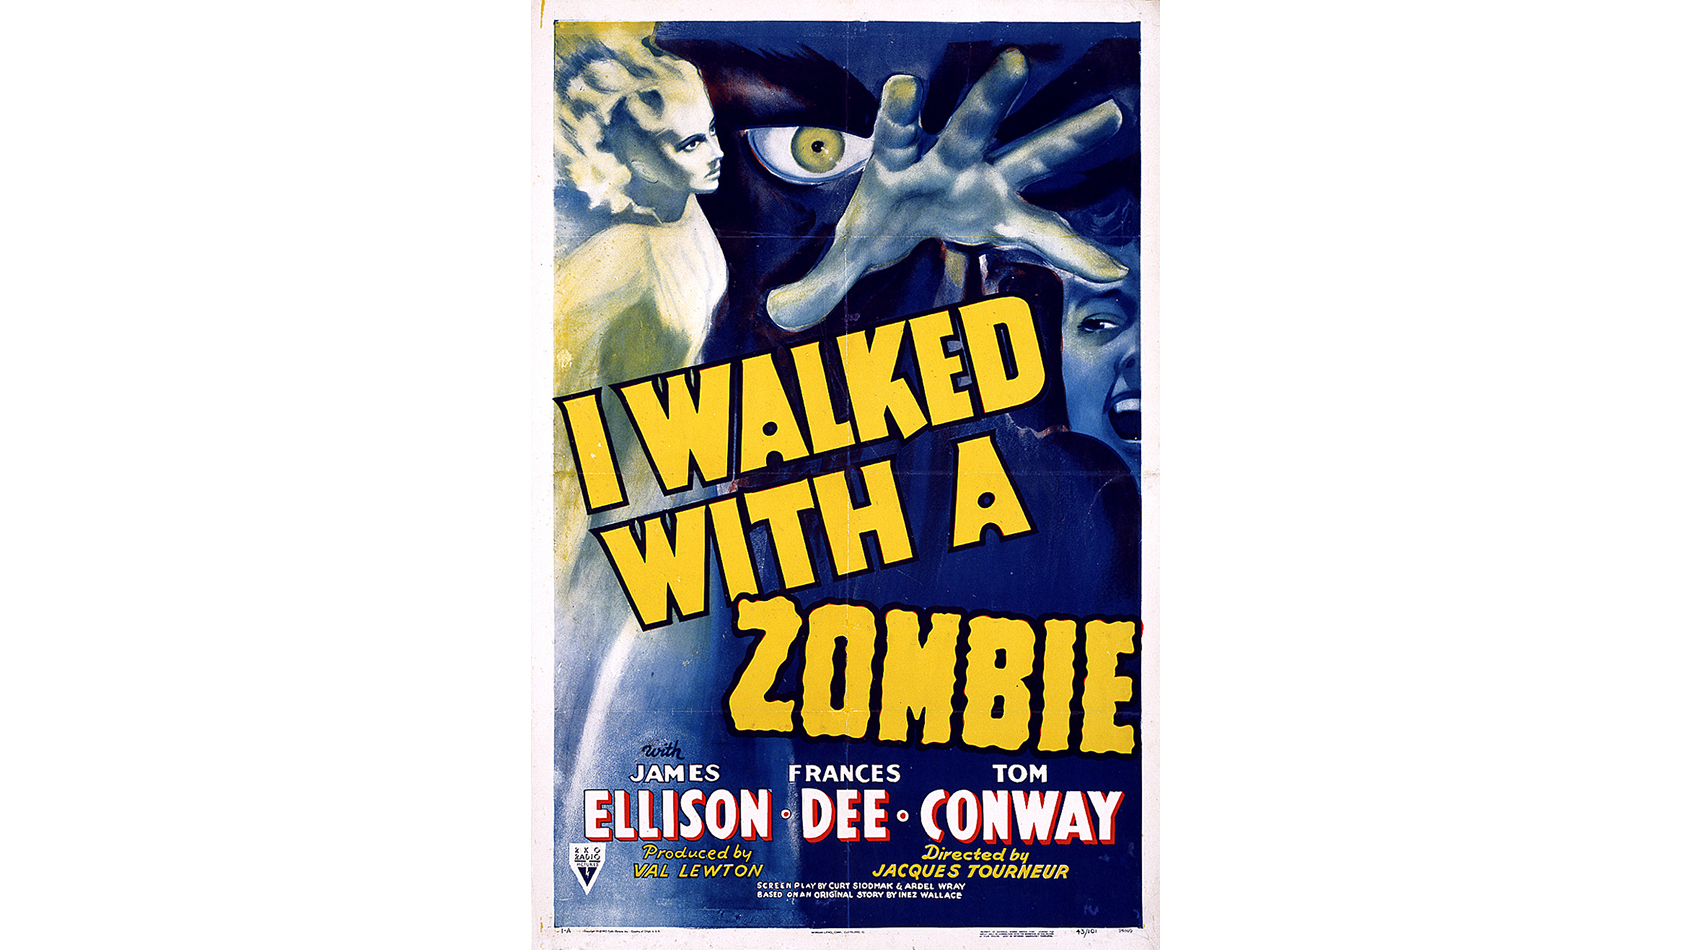 One-sheet poster for I Walked With a Zombie, directed by Jacques Tourneur, USA, 1943